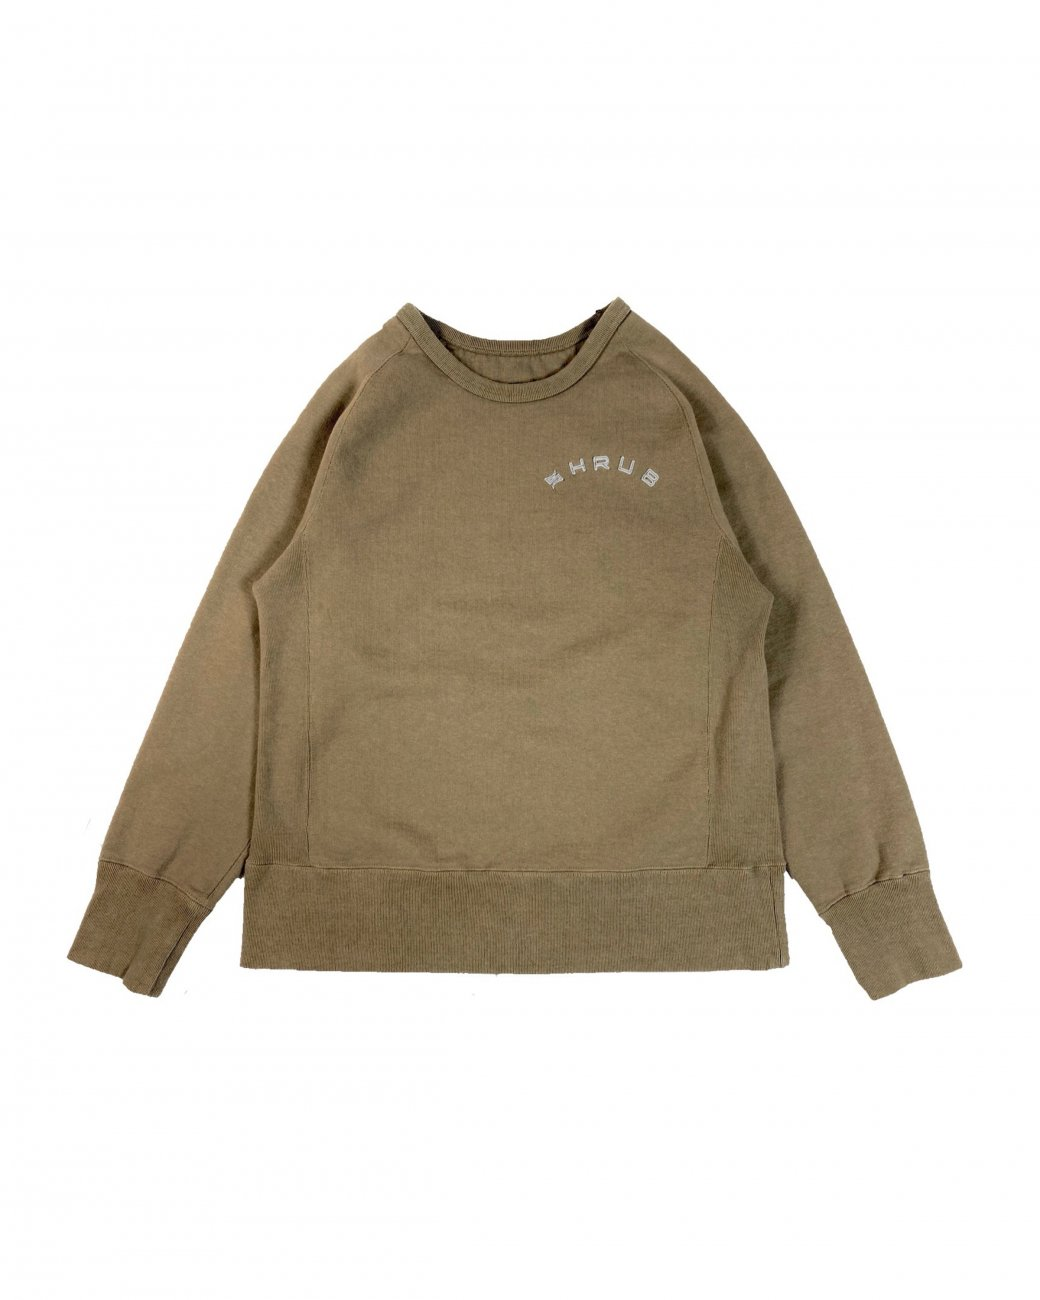 Garment Dyed Crew Neck Olive drab